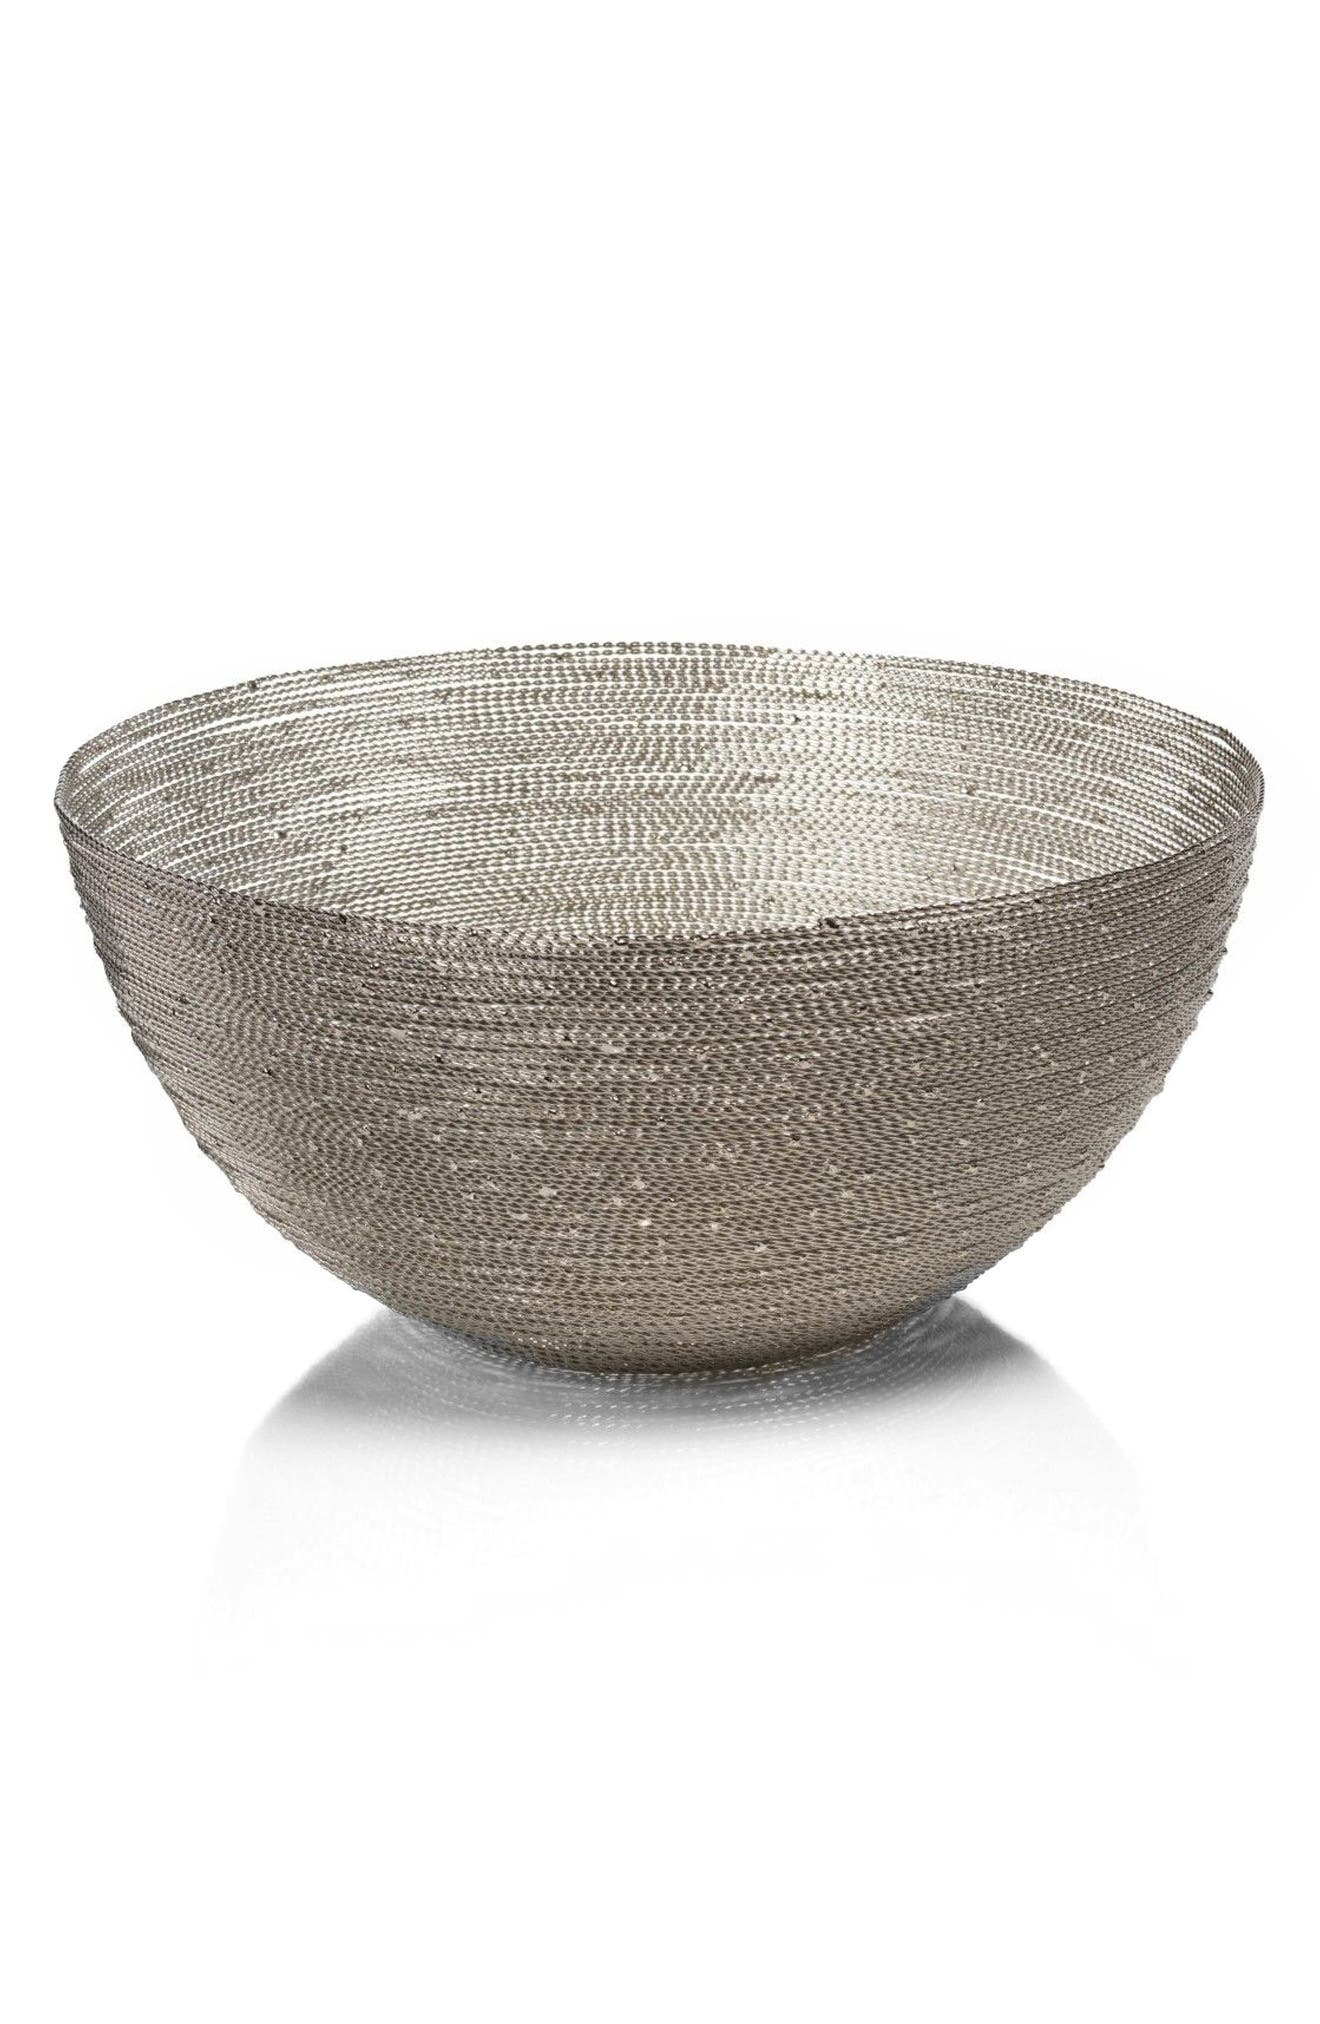 Zulu Round Woven Wire Basket,                         Main,                         color, 040